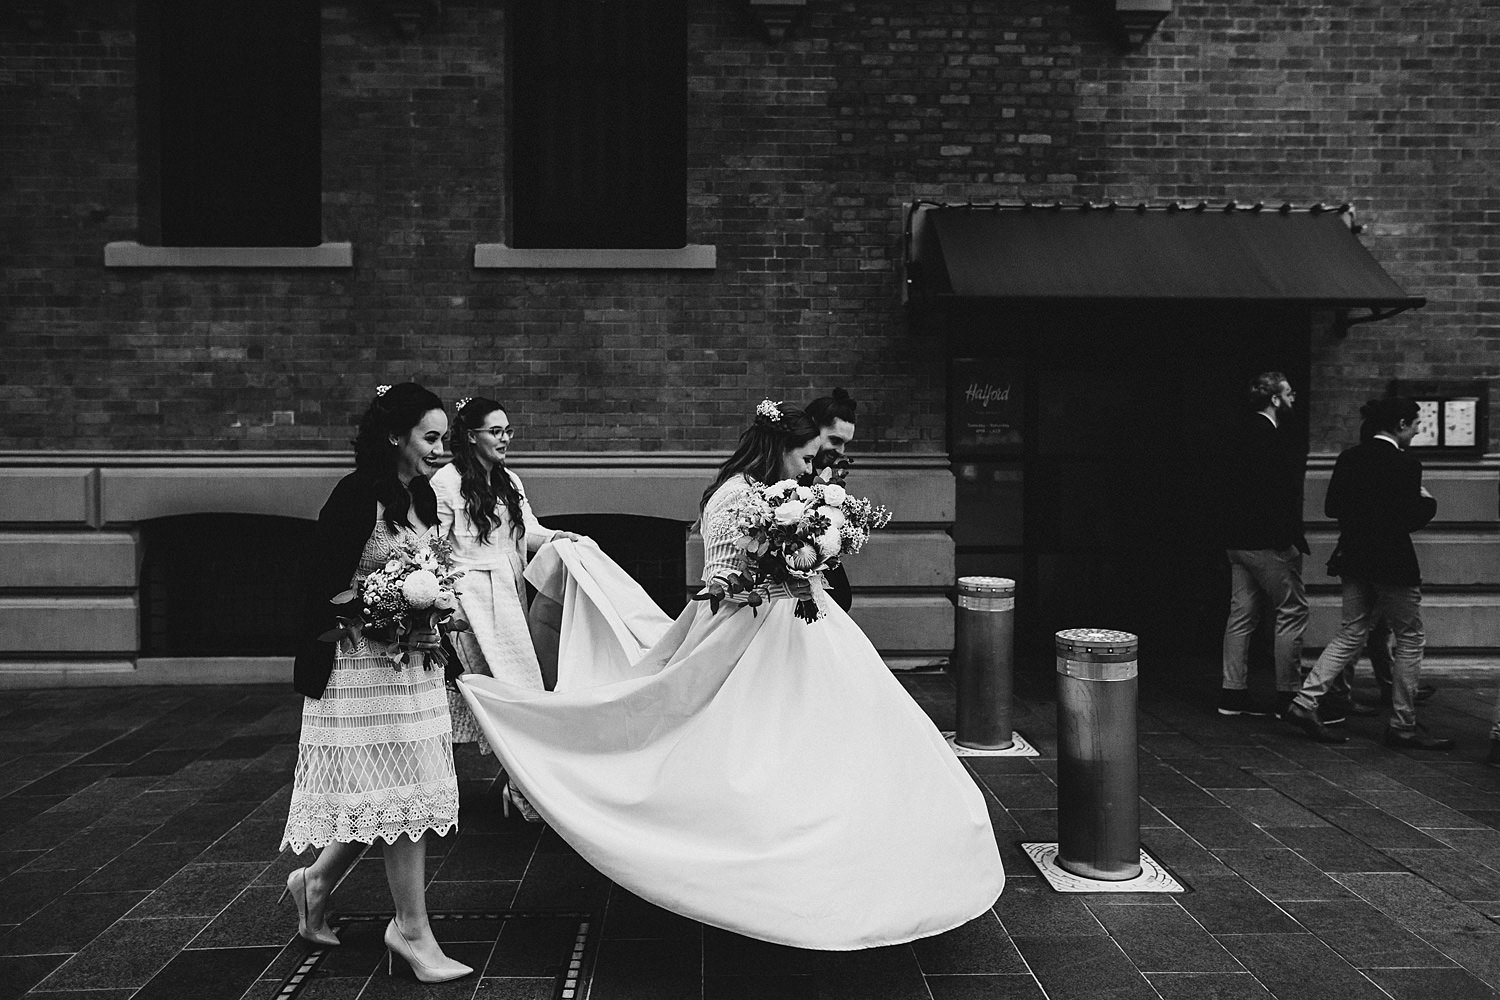 Bride Floating Illusion Girls Help Dress